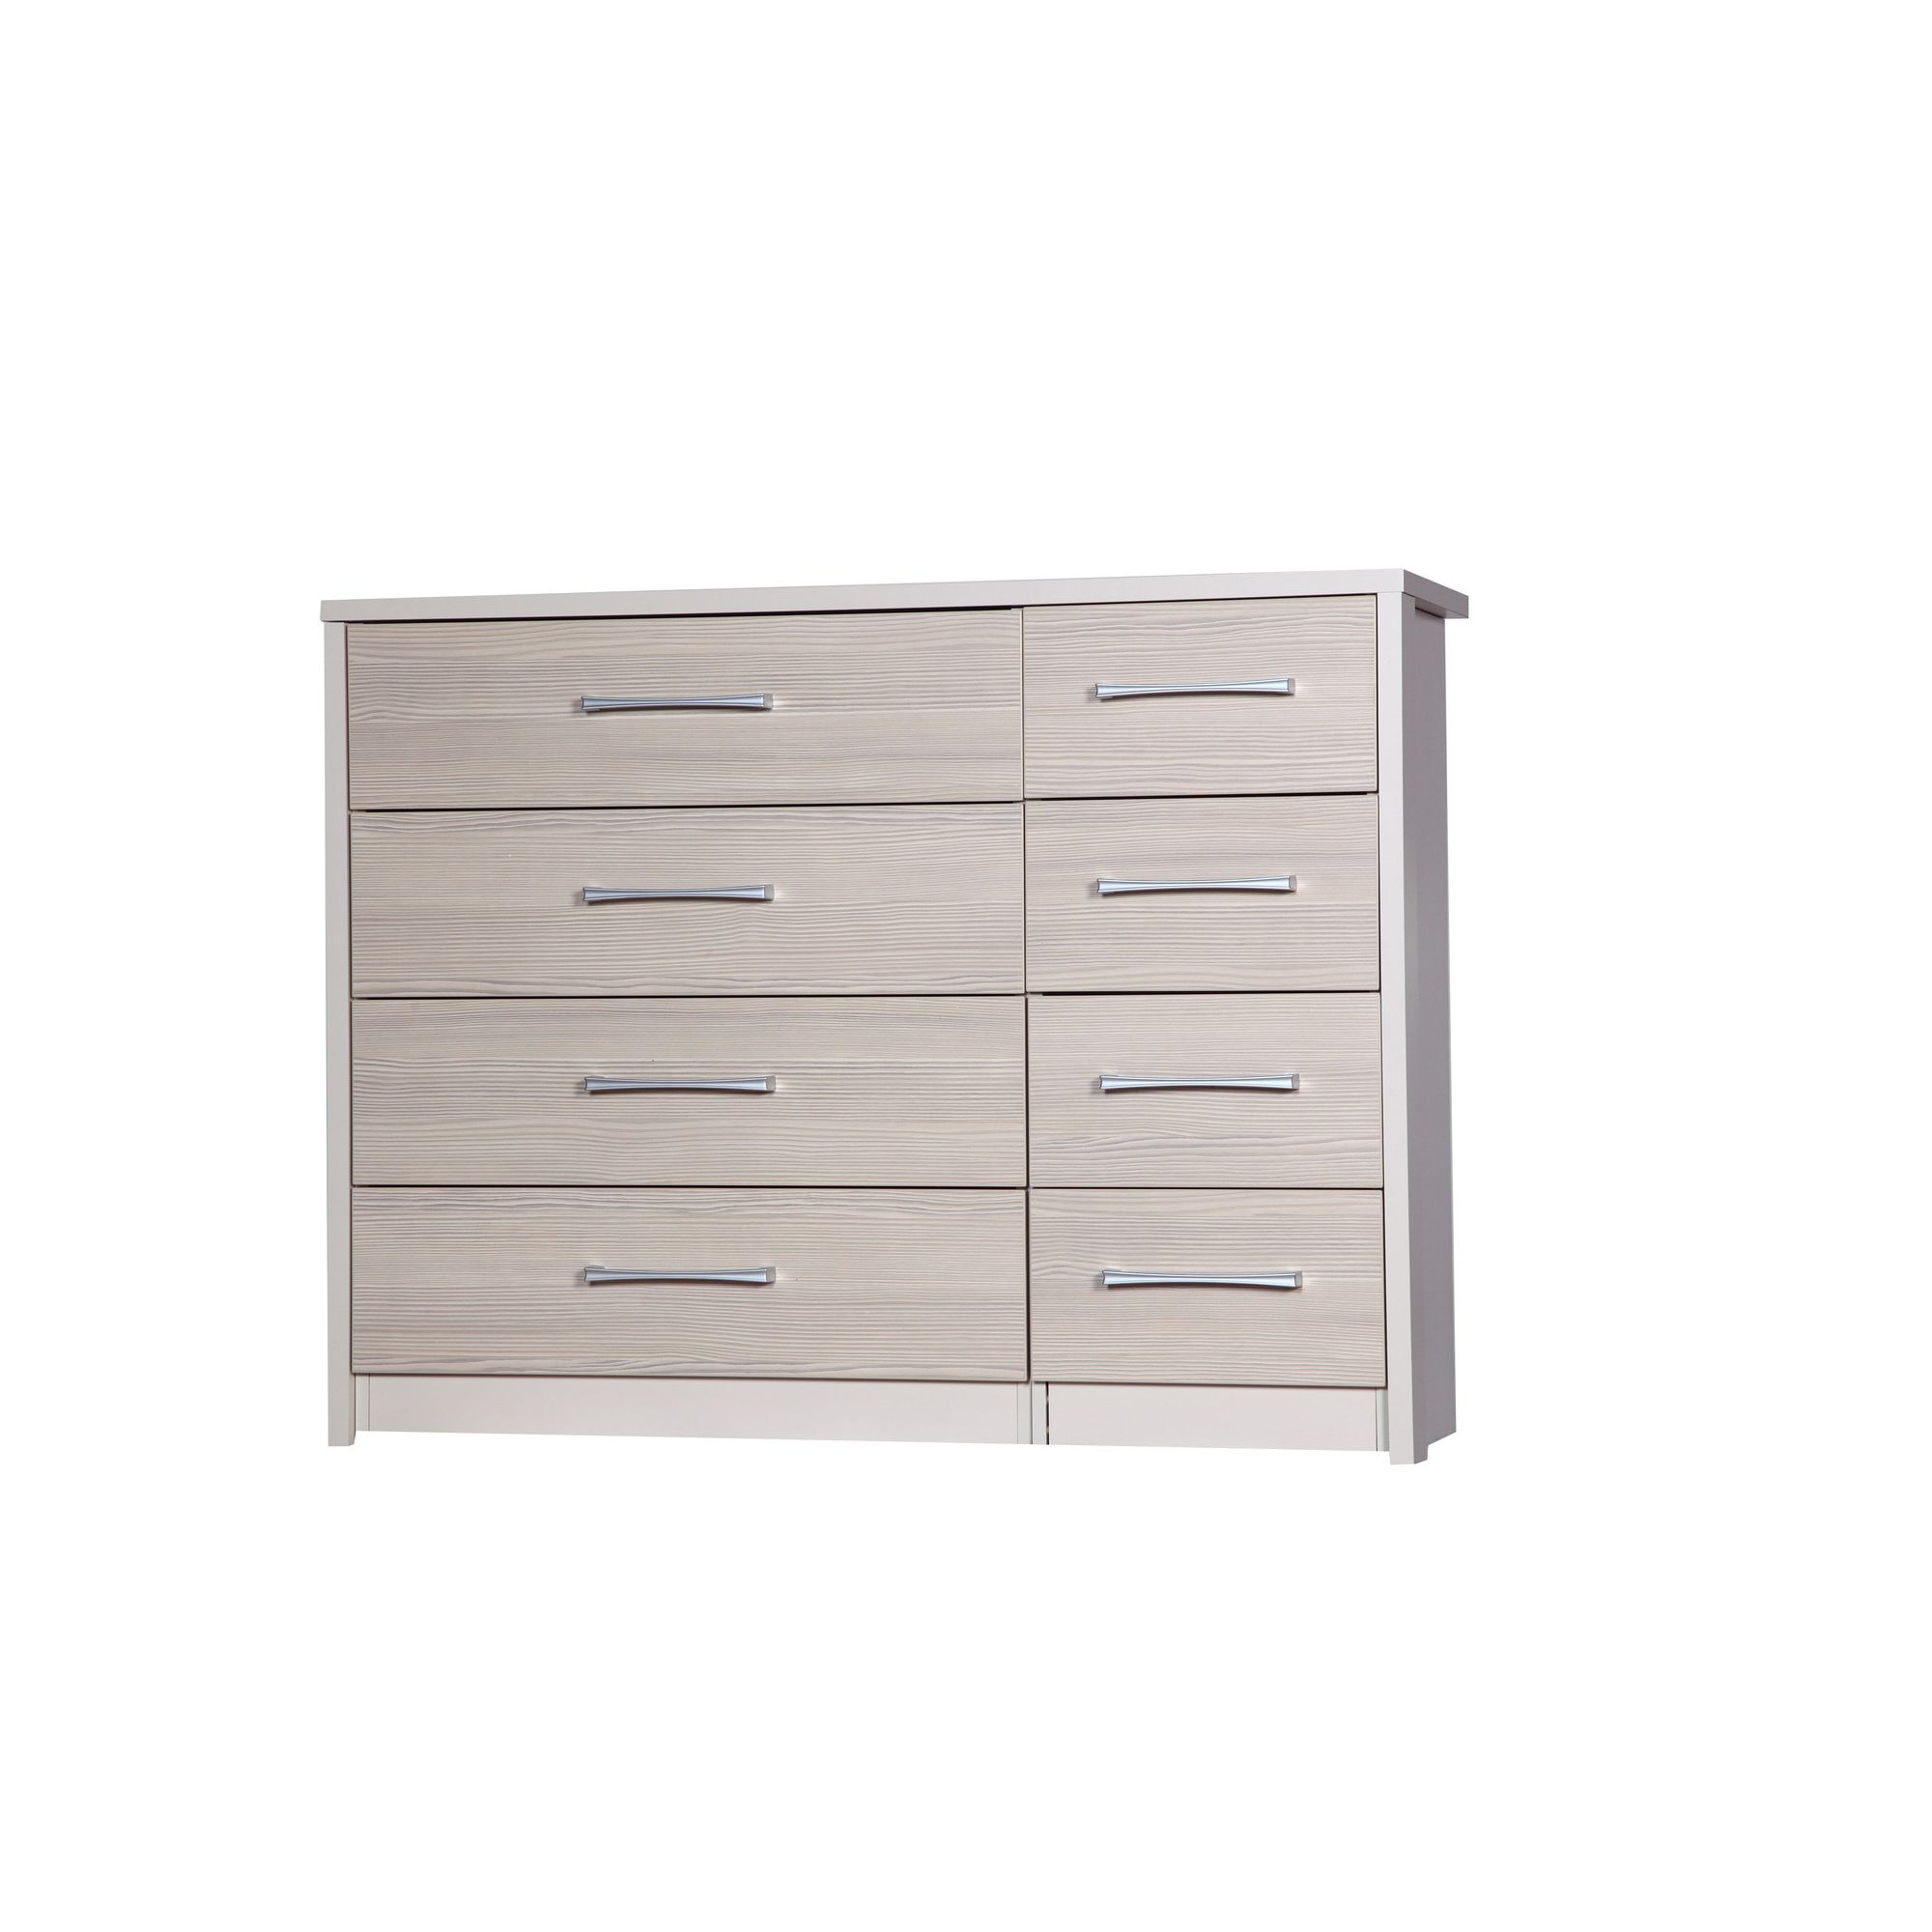 Alto Furniture Avola 8 Drawer Double Chest - Cream Carcass With Champagne Avola at Tesco Direct